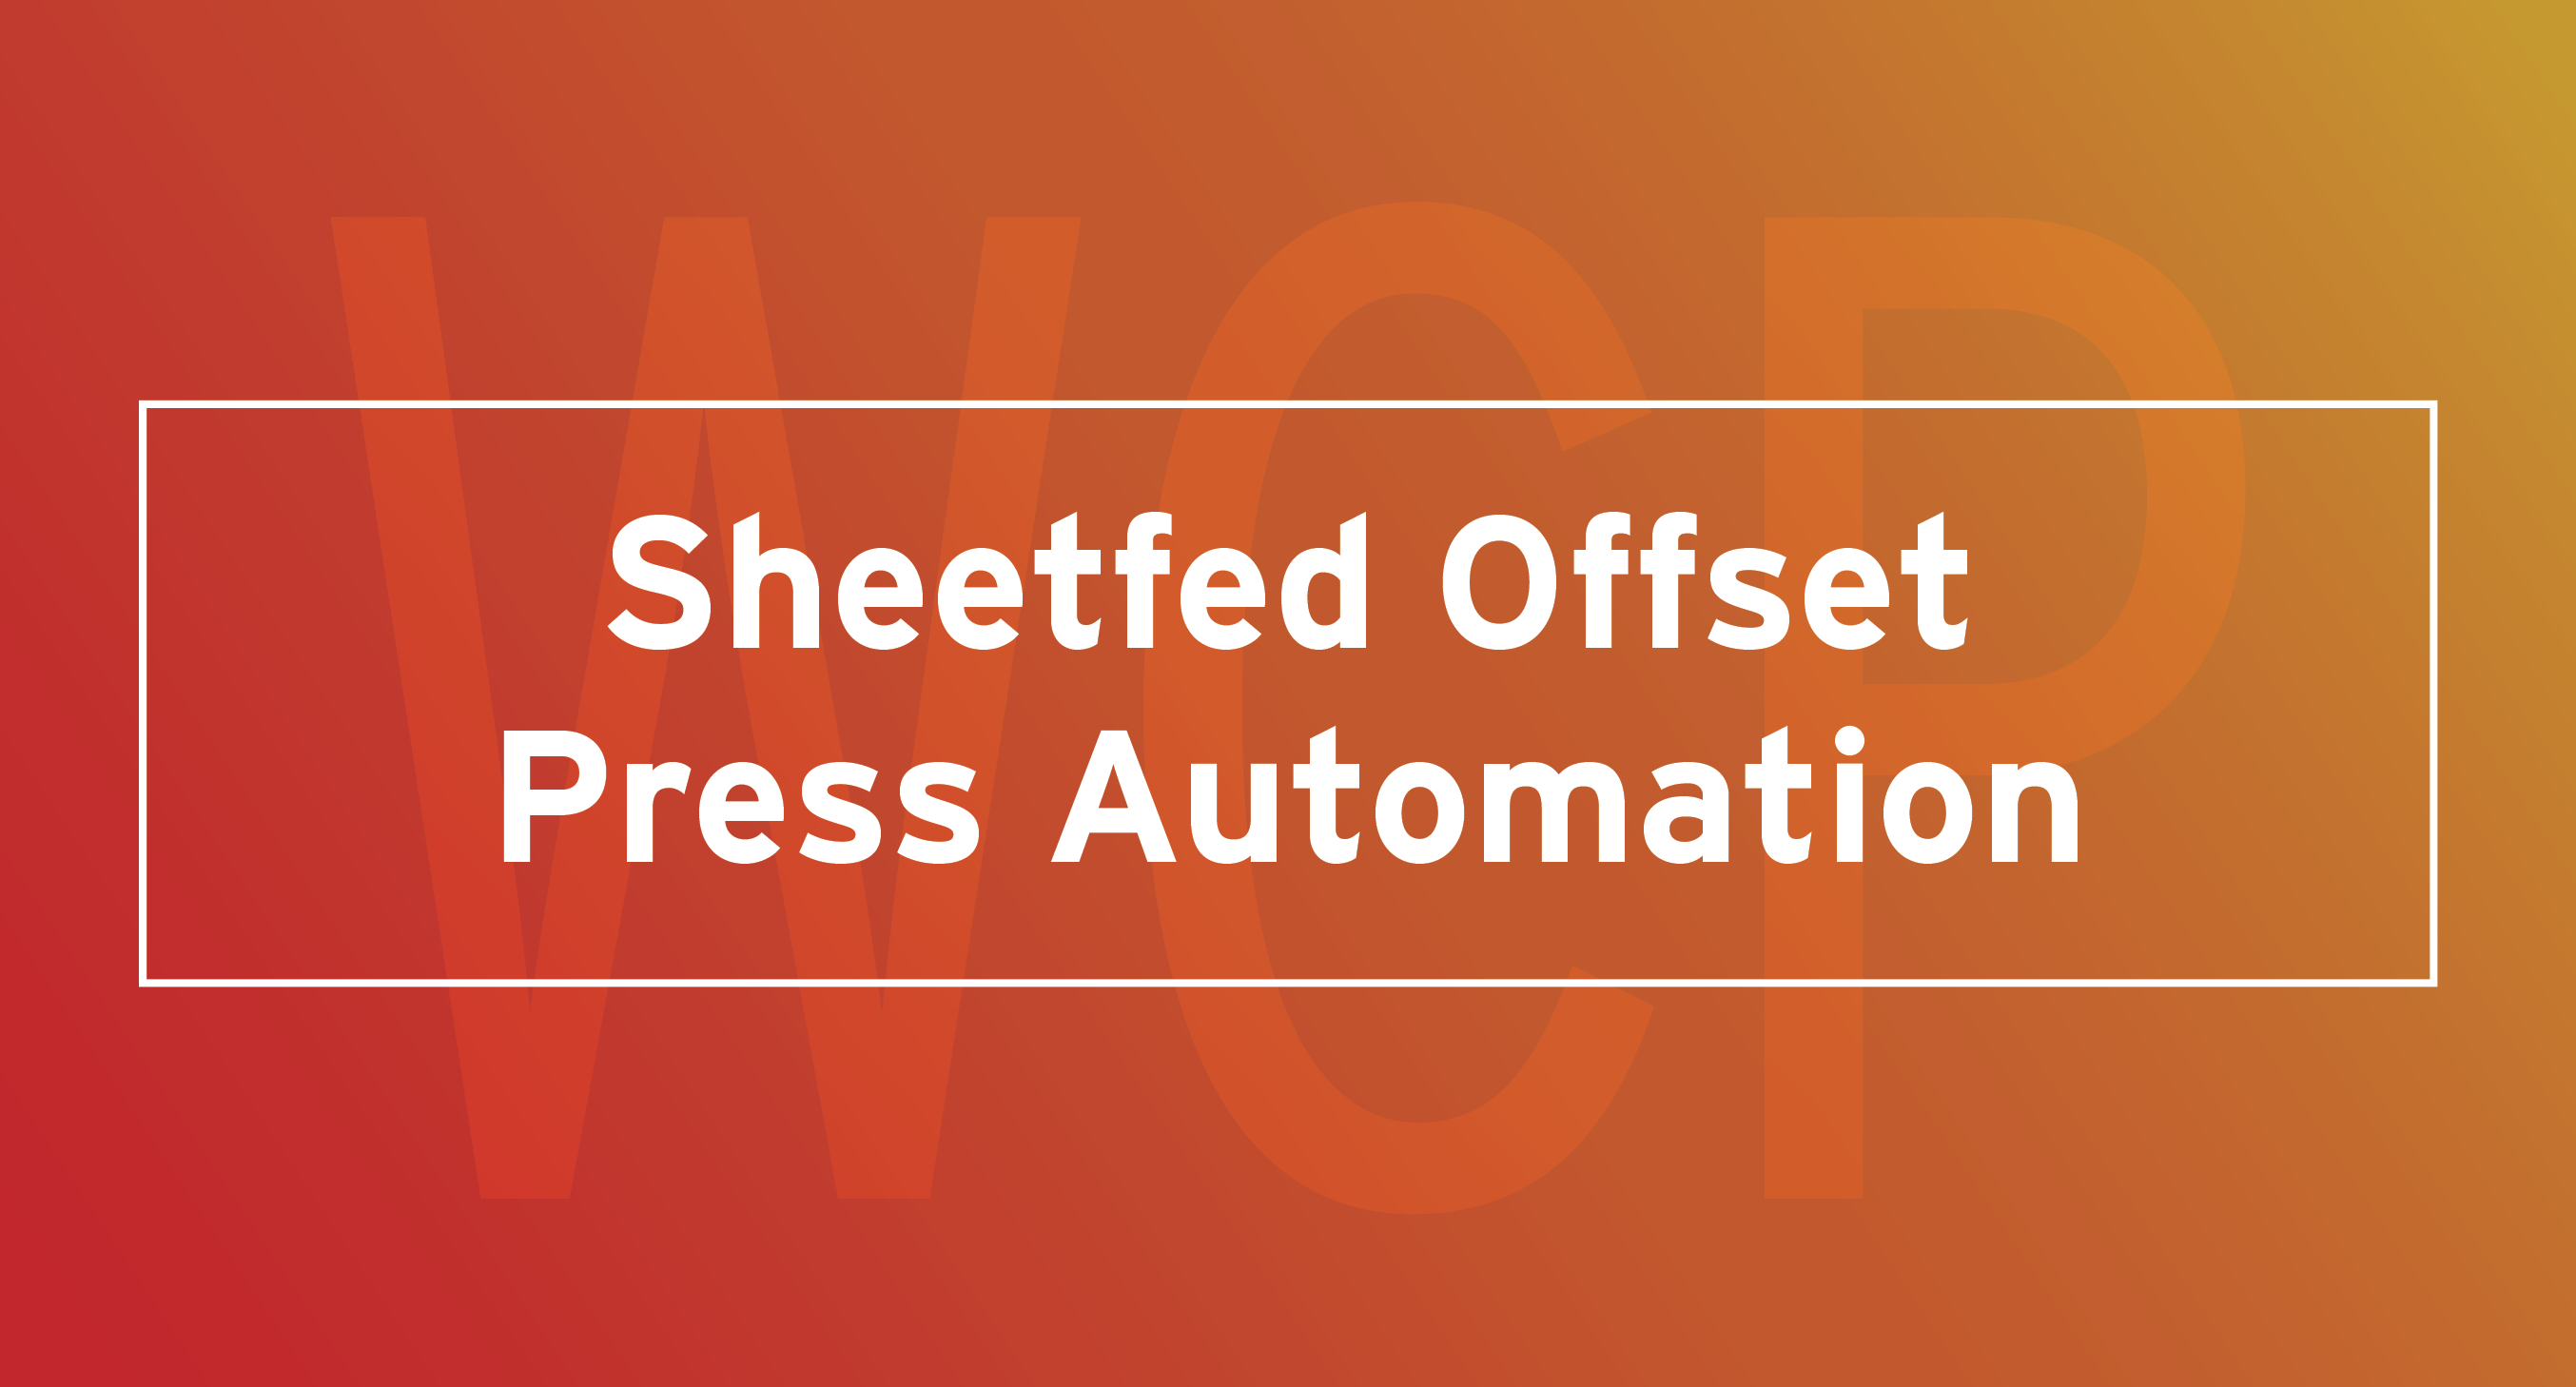 Wallace Carlson talks with Printing Impressions on how Sheetfed Offset Press Automation Changed The Business